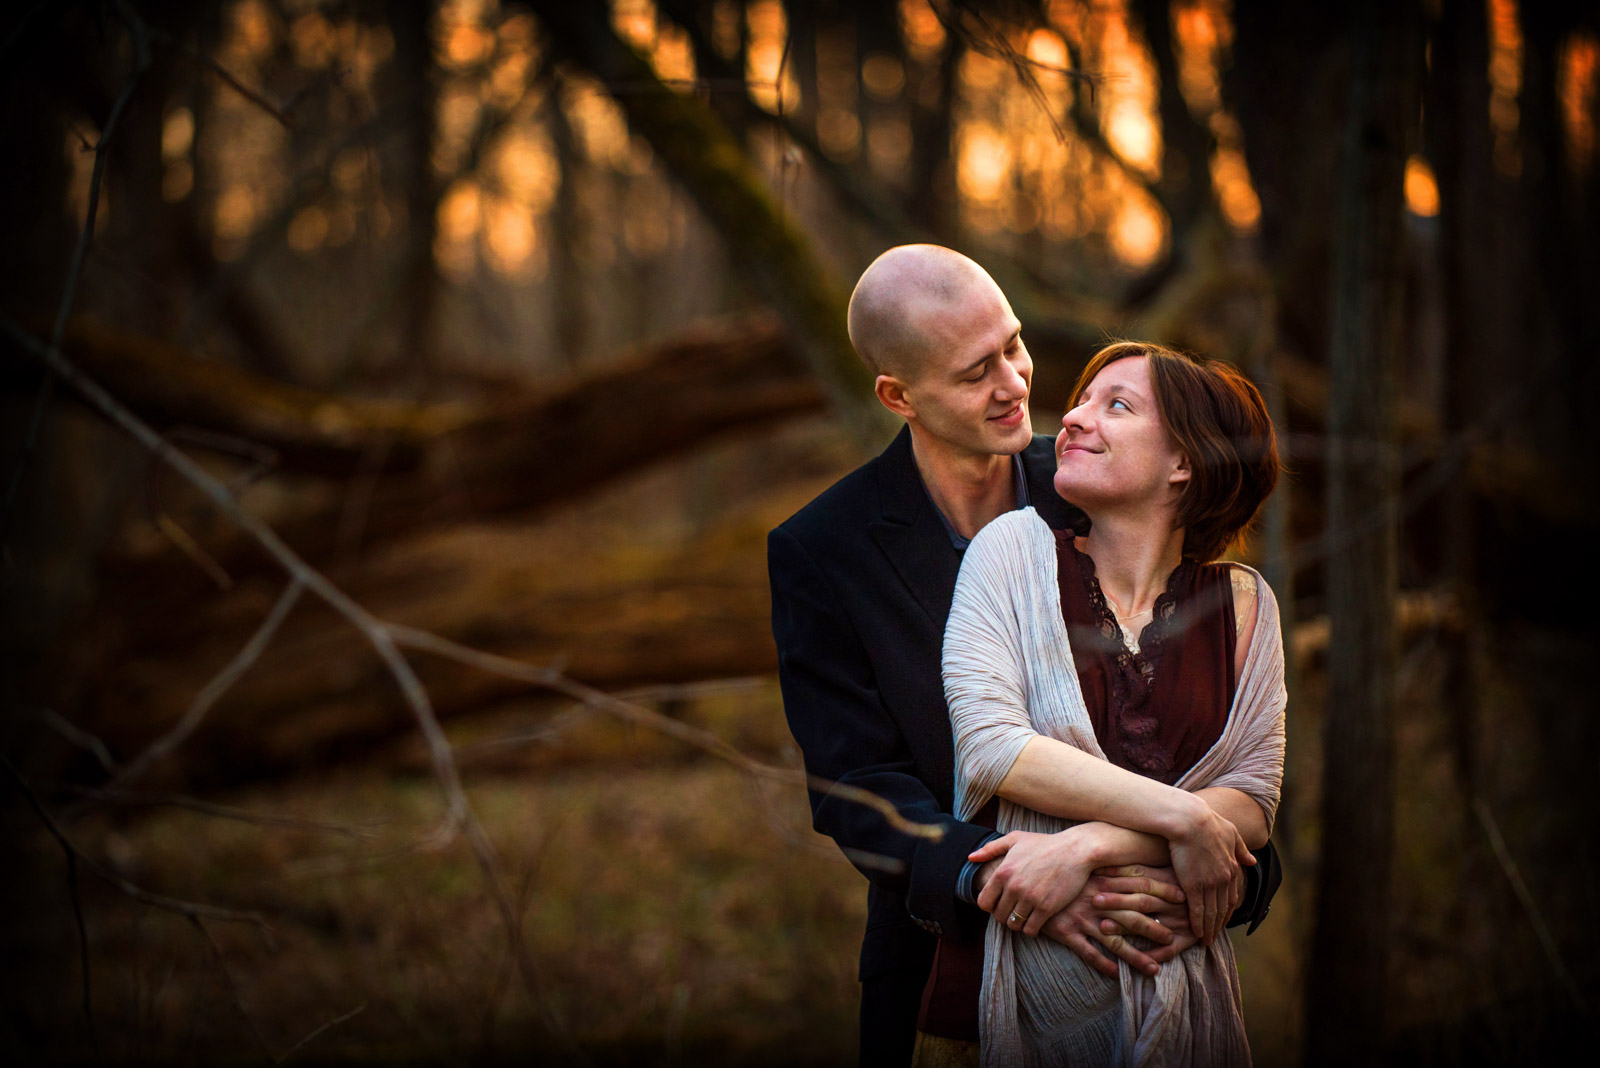 Engagement Session in Chicago suburbs at sunset in forest preserve